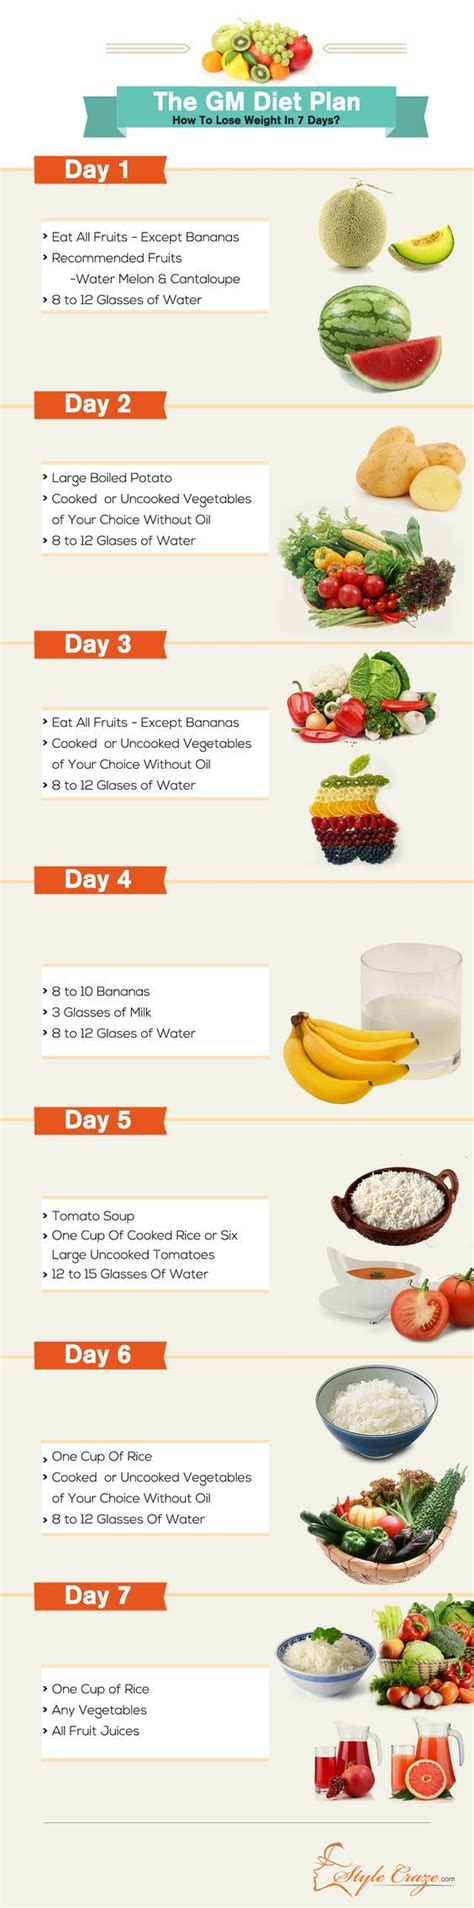 7 Day Detox Drop Pdf by The Gm Diet Plan How To Lose Weight In 7 Days Http